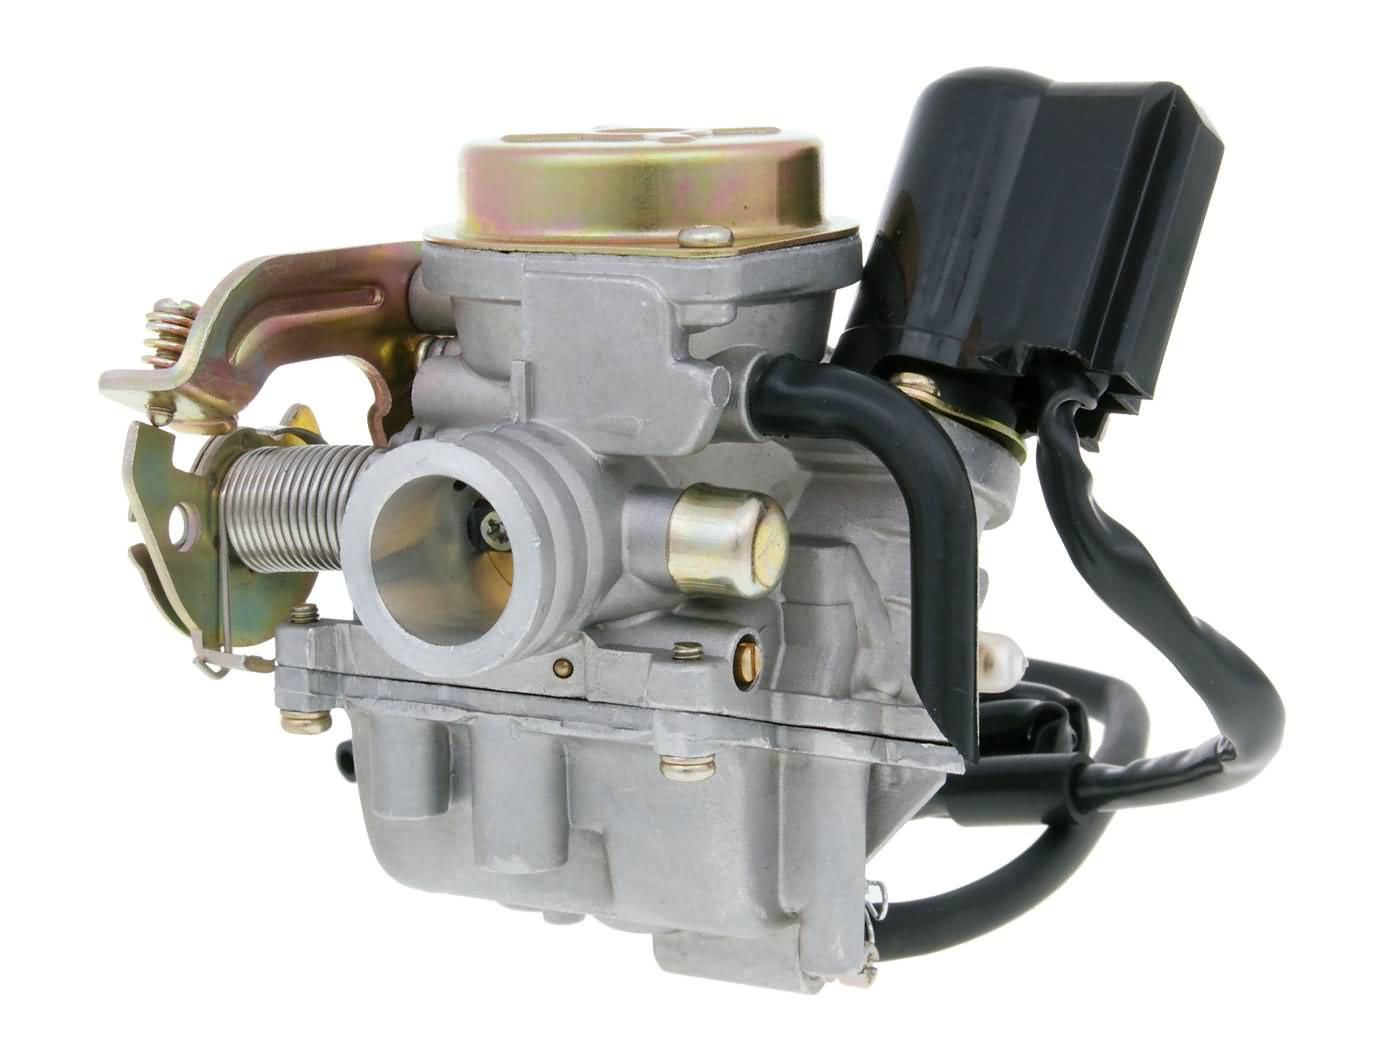 Carburetor Naraku V3 For 50 90cc 4 Stroke 139qmb A Peugeot Jetforce 50cc Wiring Diagram